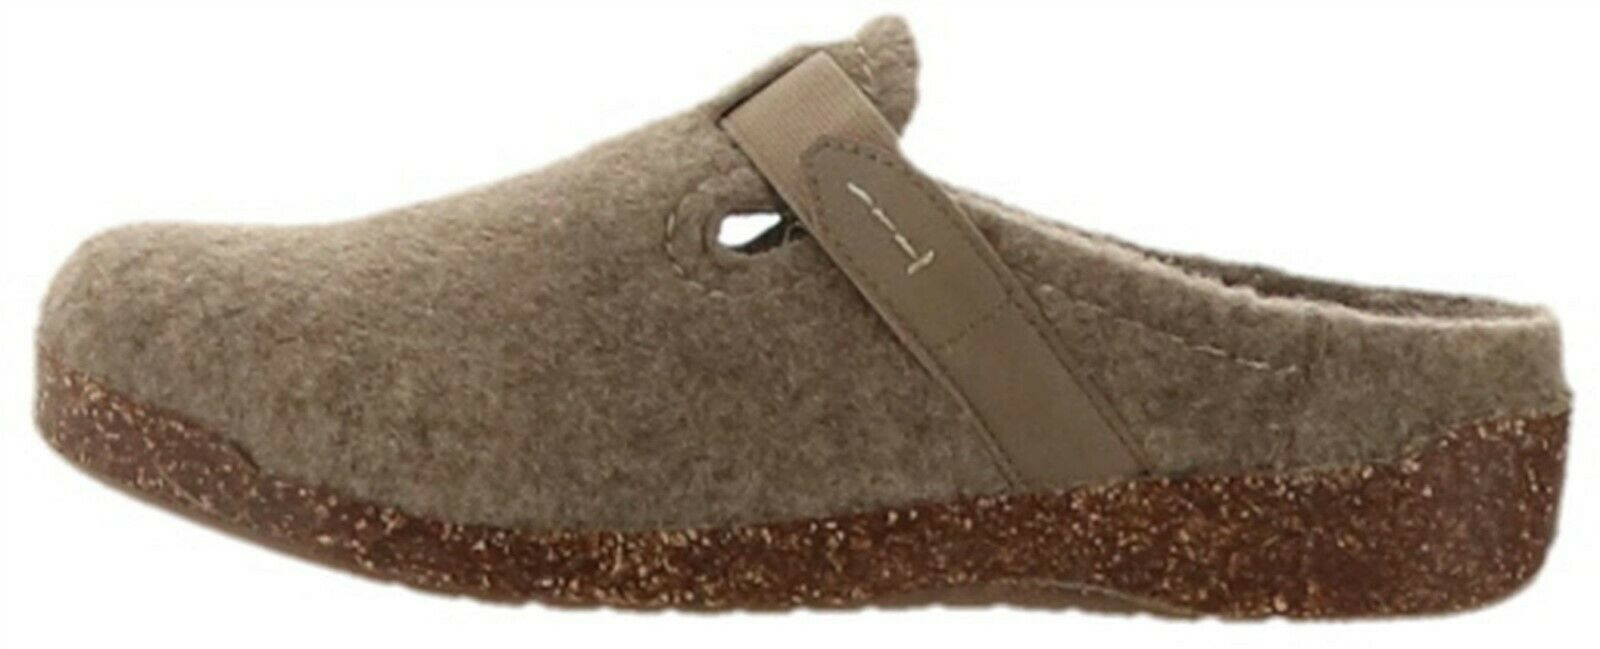 Primary image for Earth Origins Felt Slip-On Clogs Strap Detail Jenna Oatmeal 9M NEW A342507